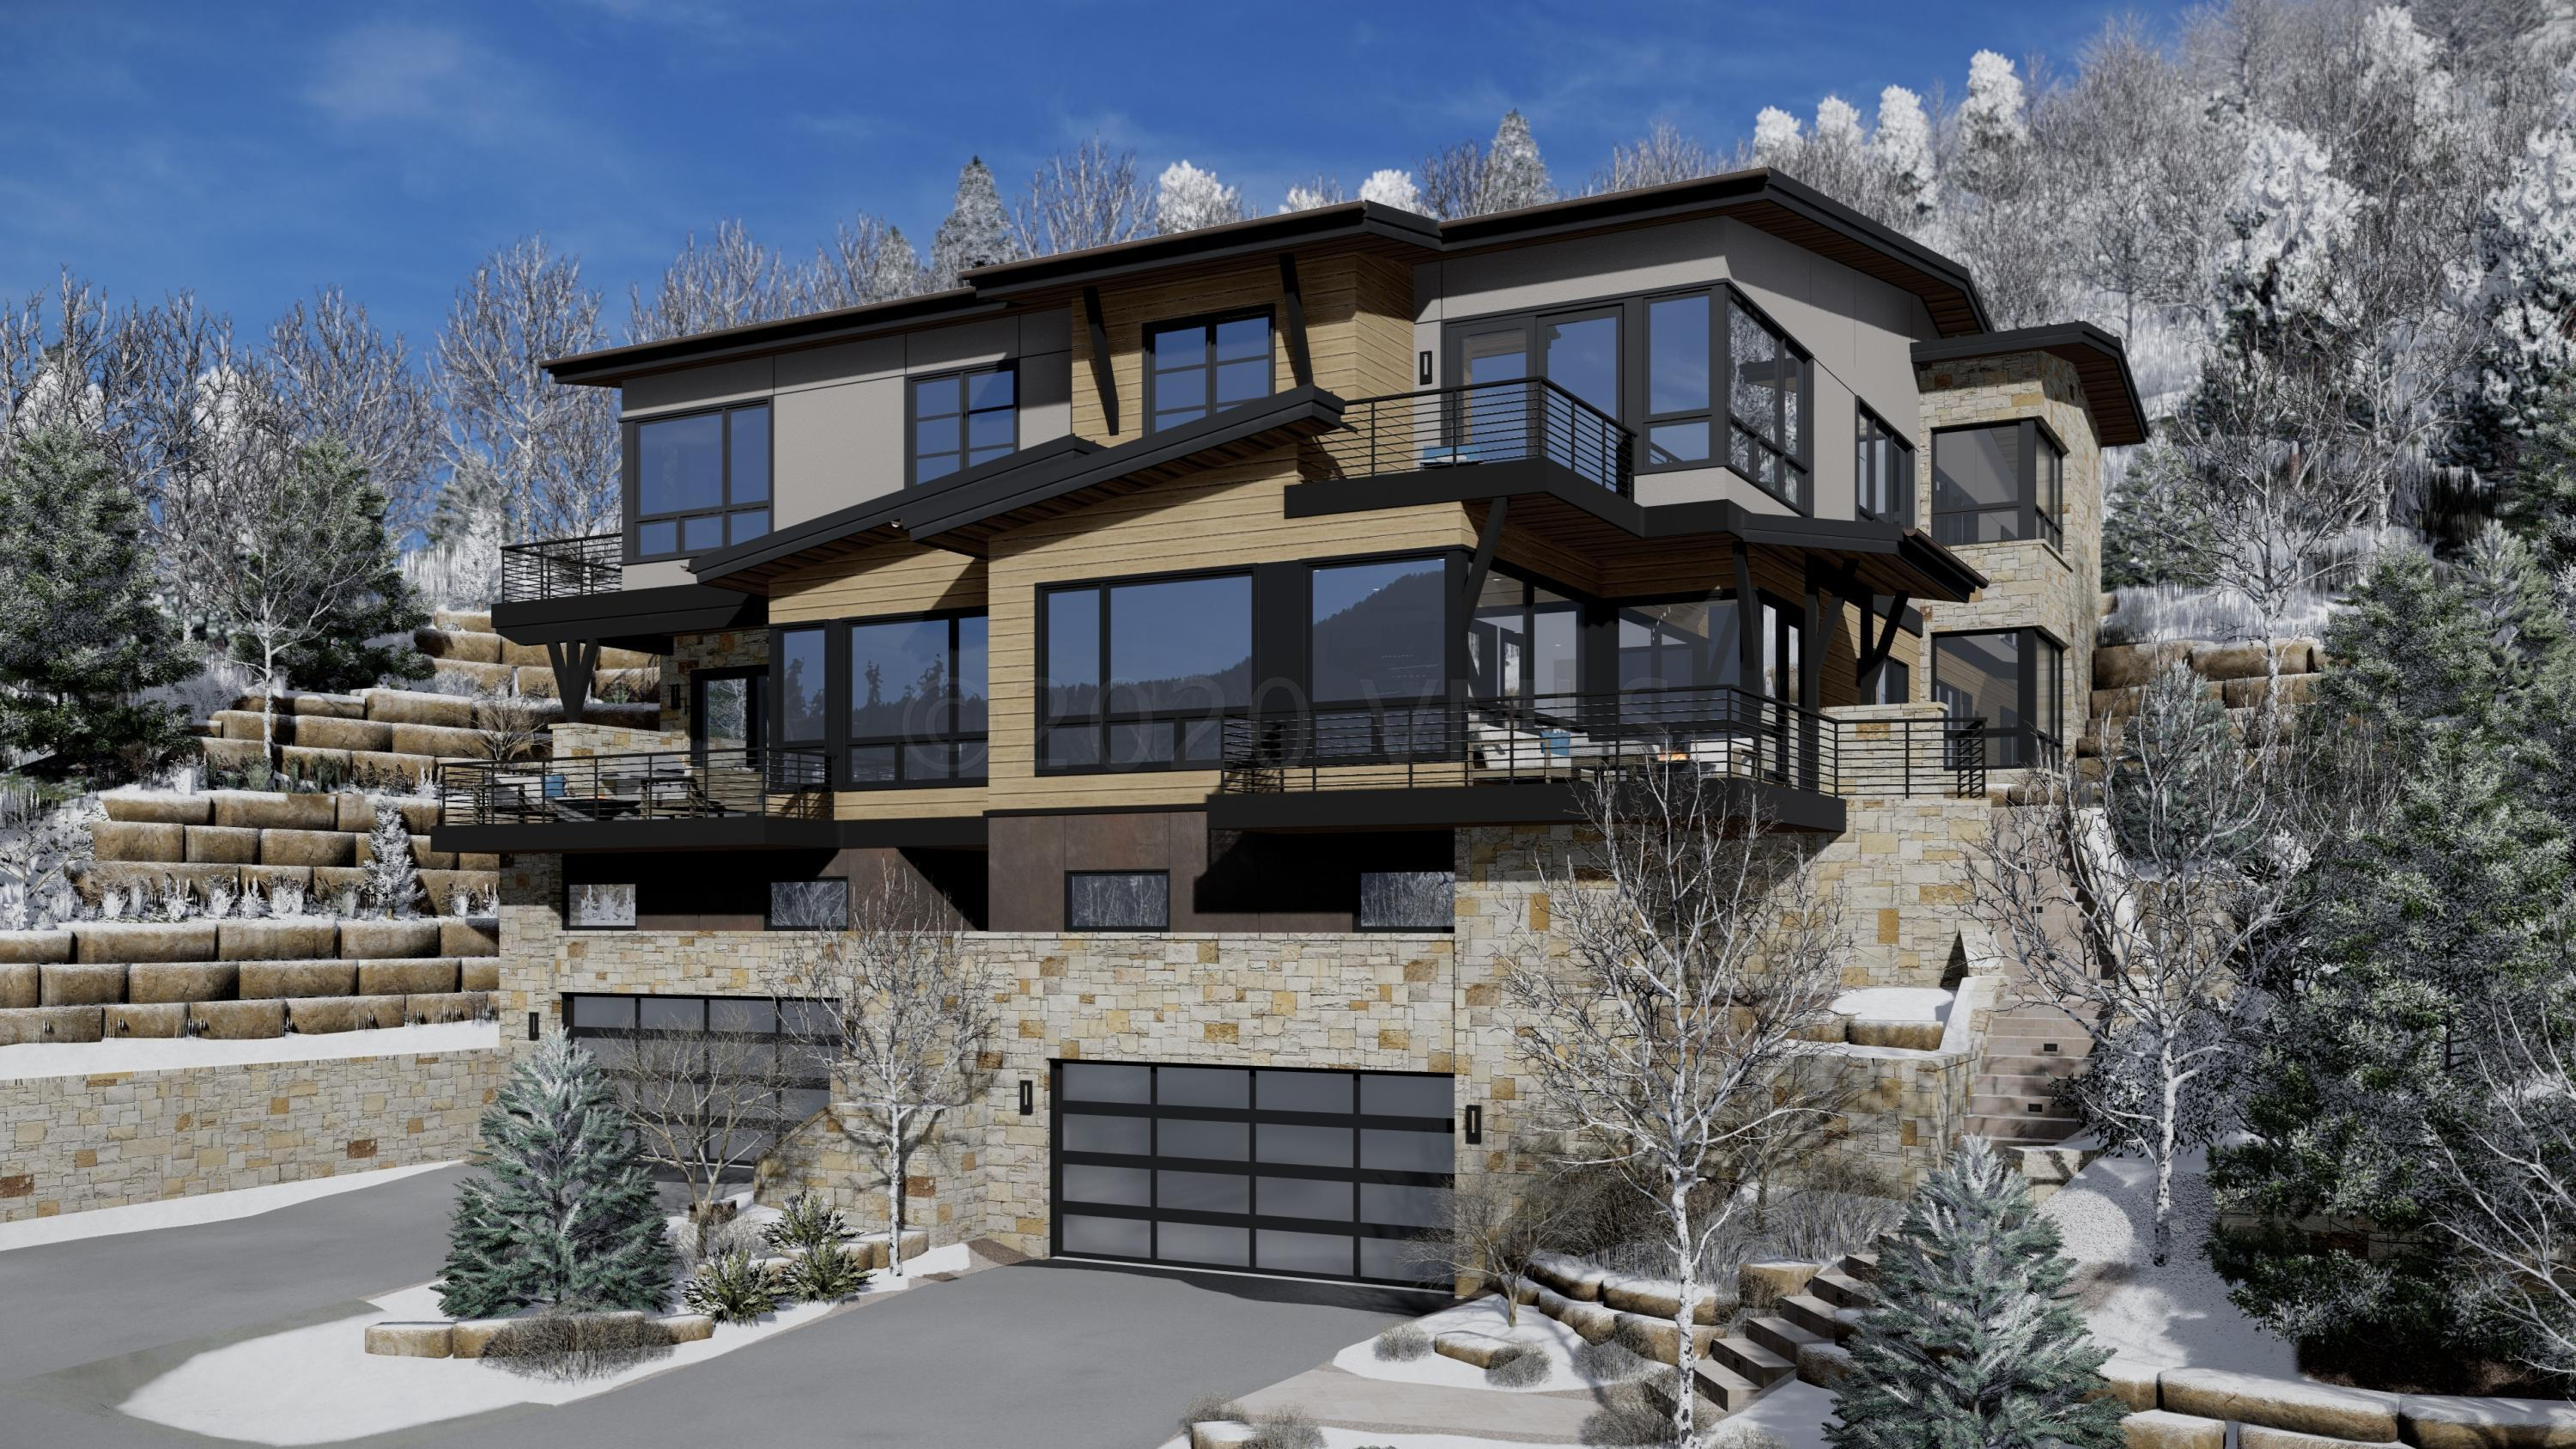 This new construction mountain modern residence designed by Scott Turnipseed encompasses 4 bedrooms and 5 bathrooms and was designed to celebrate the breathtaking views.  The clean contemporary look still feels warm and cozy with an easy breezy and slightly transitional interior finish.  The main level is an open concept with white oak floors with a warm finish, ultra white quartz countertops and imported Italian cabinets in larice grey mixed with a section of white cabinets for contrast.  The main living room all centers on the gorgeous fireplace that exemplifies sophisticated elegance.  This elevated residence has high end appliances including Subzero and Wolf, Brizo hardware and fixtures, Italian Barausse Feel Plus Doors in a Brina color with a trimless drywall return, designer lighting that is both great for gloomy days or sets just the right mood for evenings.  The wet bar is right where everyone can enjoy it between the kitchen, dining and main living room.   The two gorgeous master suites will make it a tough call for the homeowner to choose.  All bathrooms have European glass and curbless entry, Brizo fixtures, and unique materials from one another but all have that same consistent feel within the home.  Be reinvigorated by time well spent in these gorgeous suites after a great day in the Colorado Rockies. When looking for a reprieve from the action in the main great room, the family room located upstairs is perfectly placed for on top of the world views and lounging. There is plenty of room for gear in the mud room or three-car garage for a houseful of active people (two spaces in the garage are tandem). With limited inventory of new construction, we invite you to discover this mountain contemporary design masterpiece. Estimated completion March 2021. Visit mls-East.NewVailHomes.com for additional details.